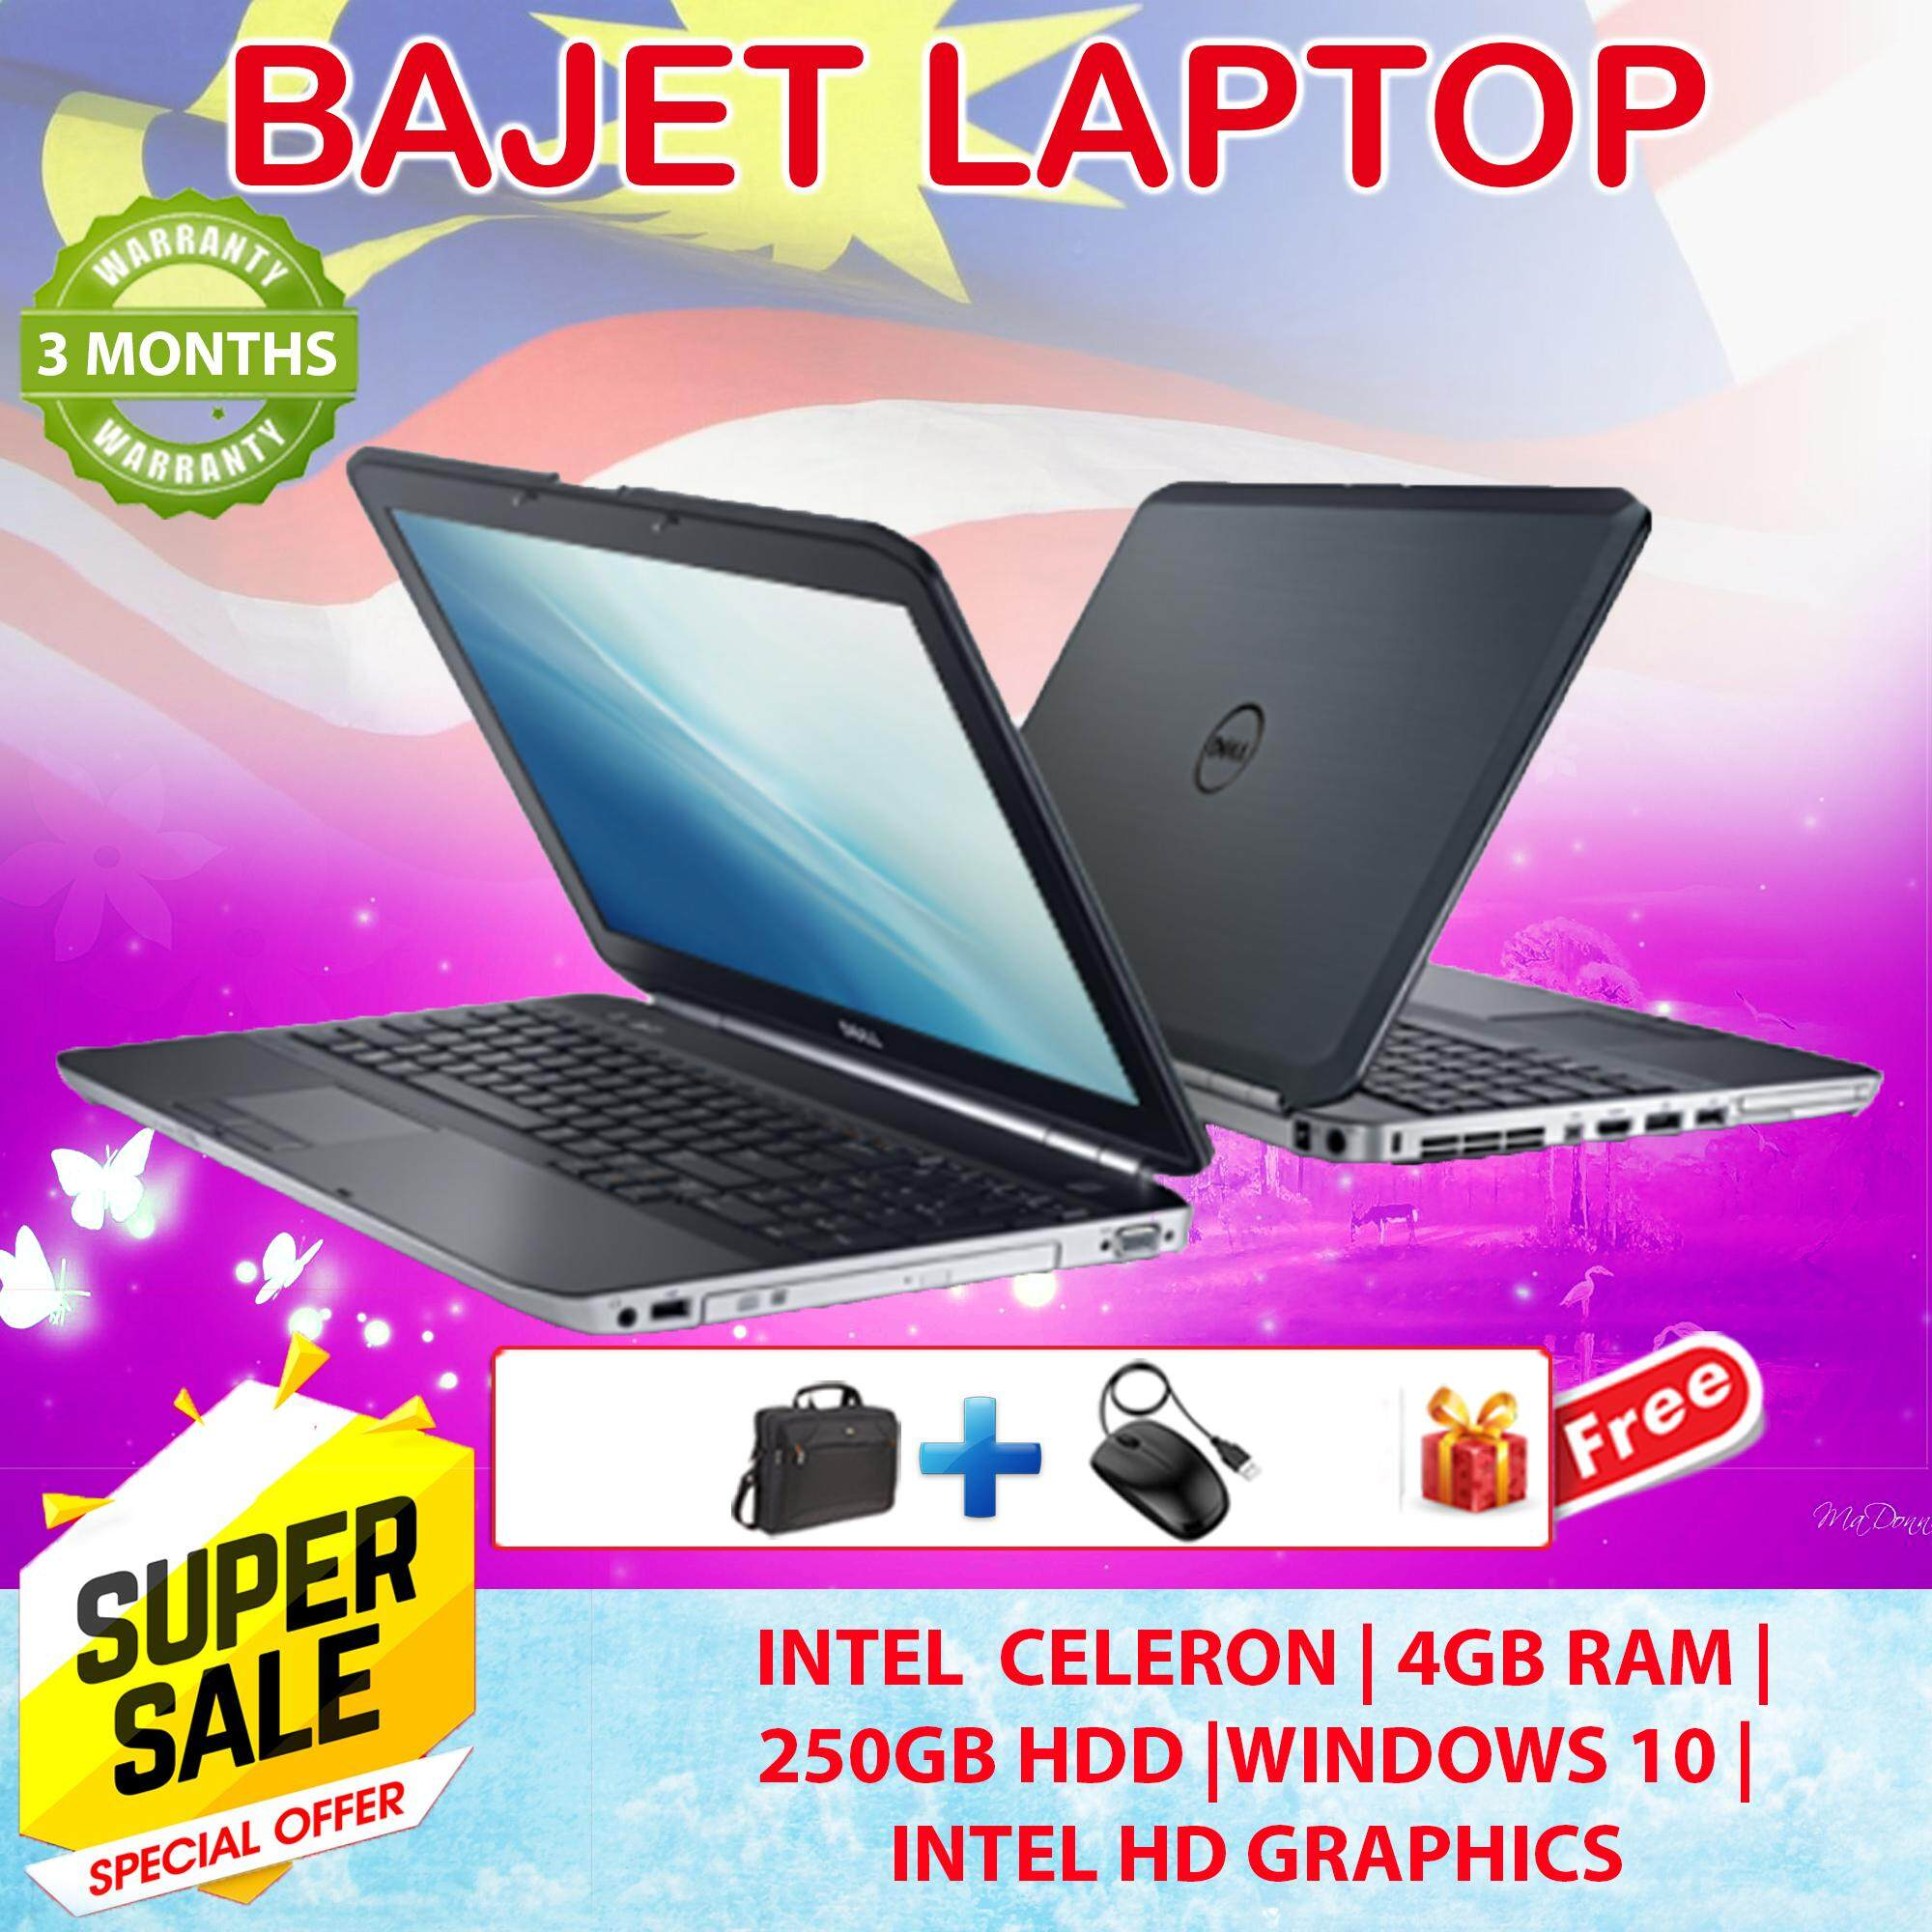 DELL E5520 Celeron-B840 4GB 250GB  DVD 3 Months Warranty - Free Bag + Mouse - Factory Refurbished Student Bajet Laptop Malaysia